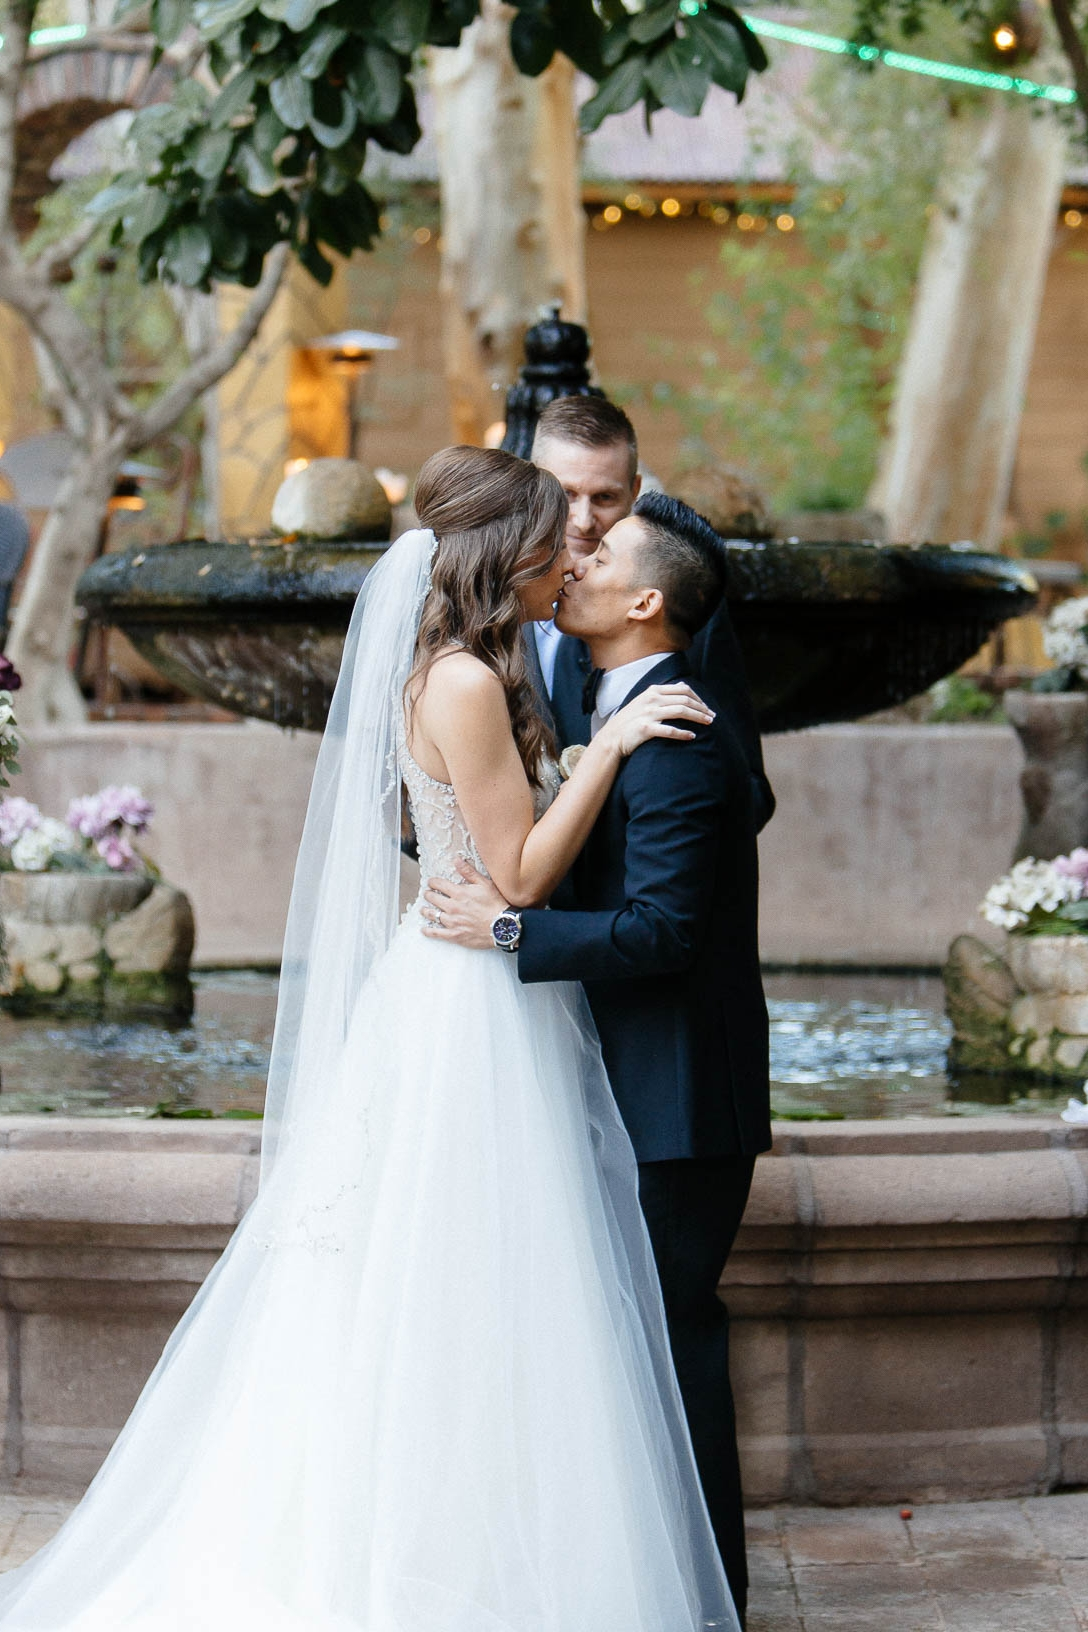 161112-Luxium-Weddings-Arizona-Jon-Madison-Boojum-Tree-First-Look-032.jpg